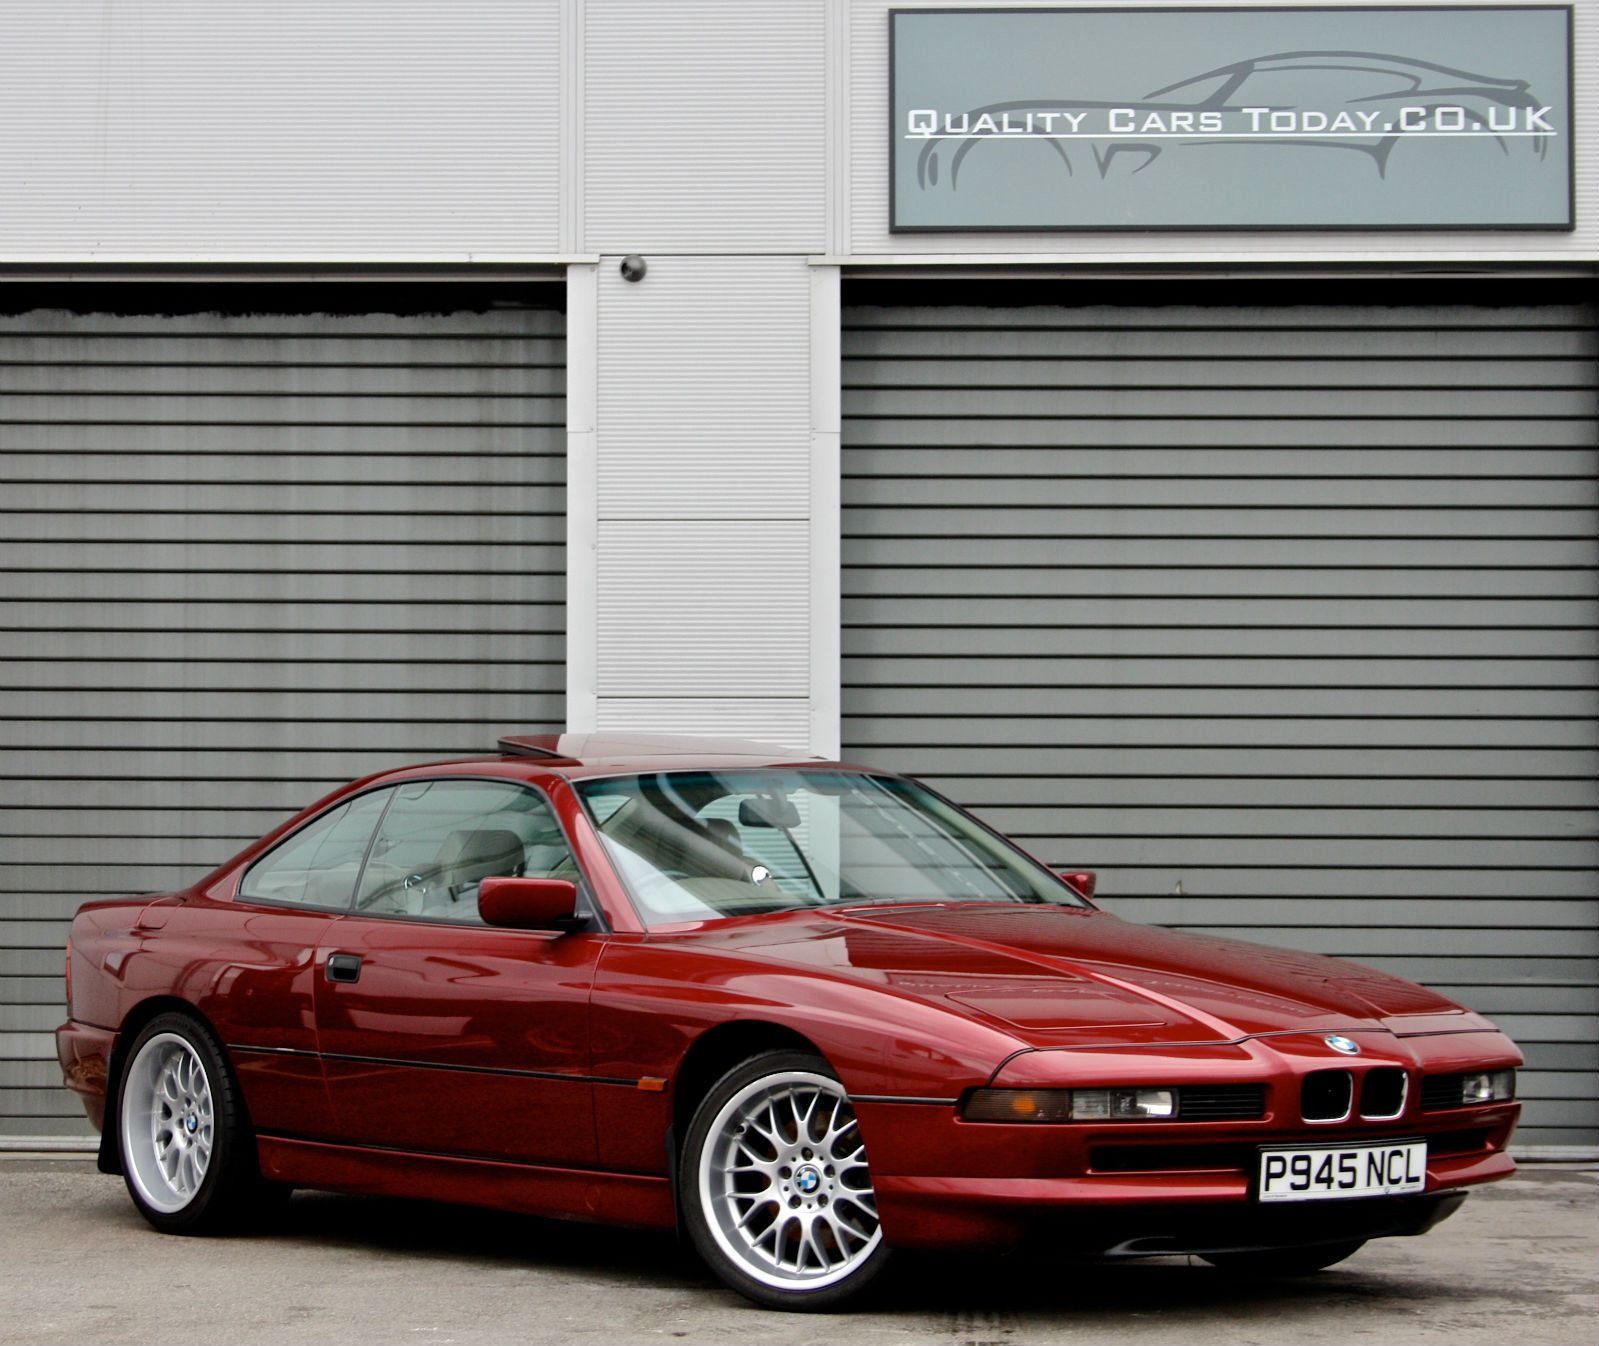 e352a3683890961c6a6f68d3f11de758 Fascinating Bmw Z1 for Sale Ebay Cars Trend